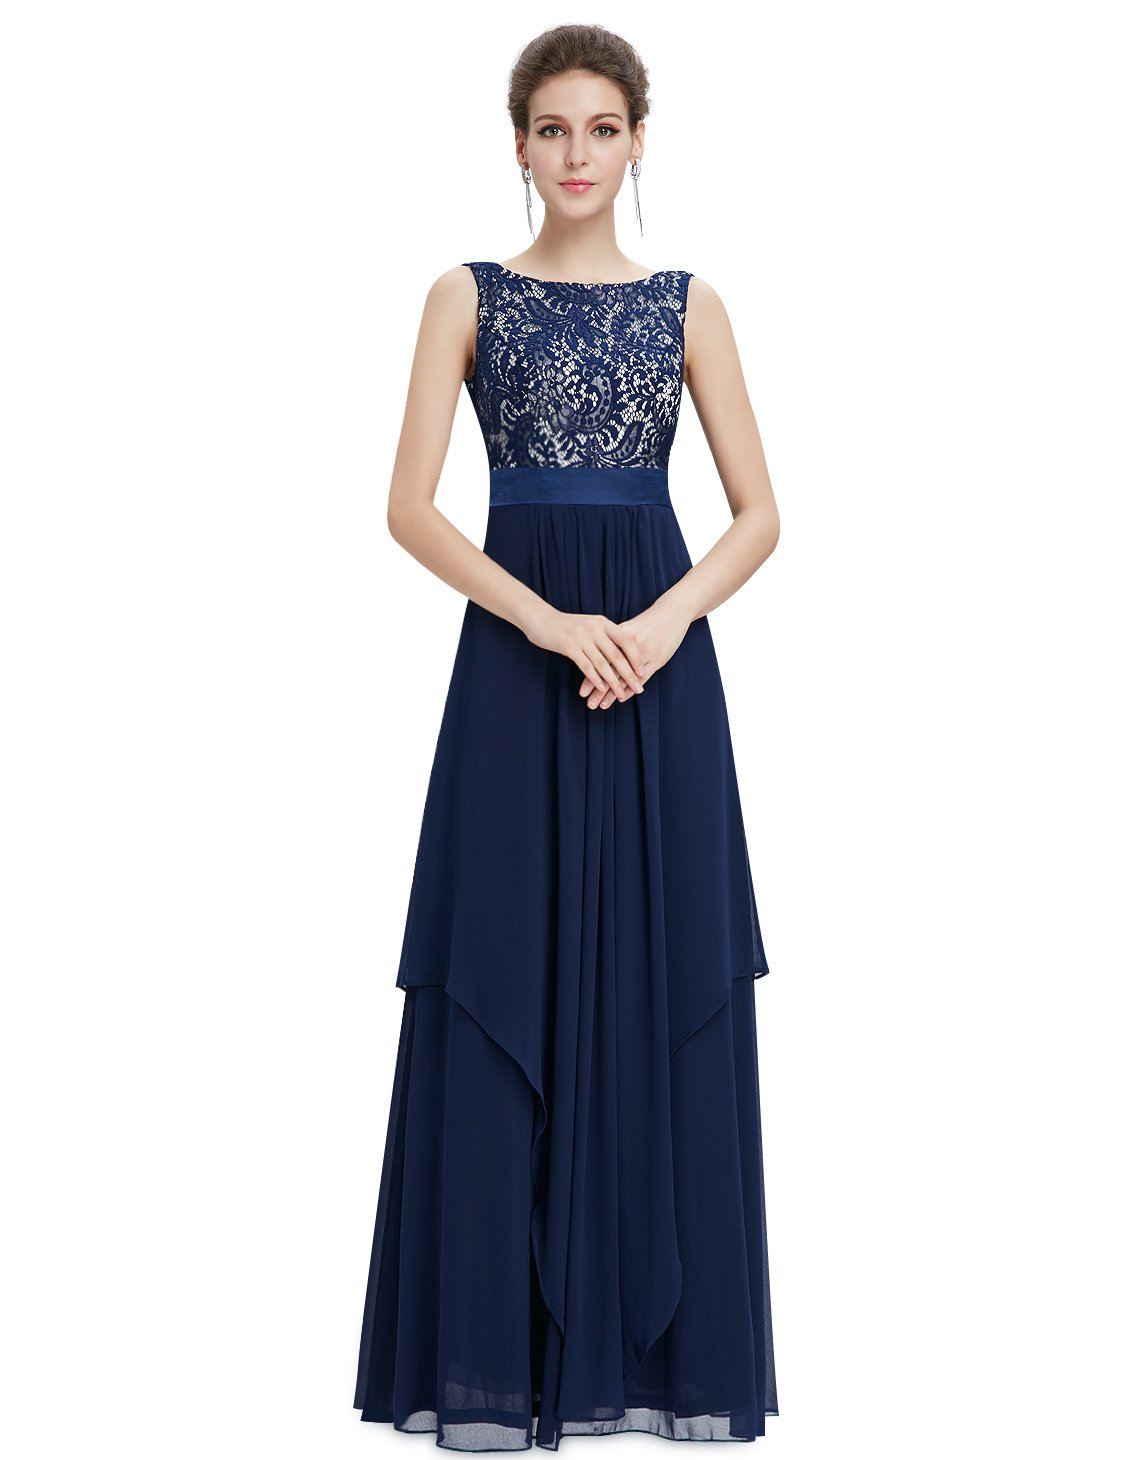 Ever-Pretty Womens Lace Bodice Fitted Waist A Line Military Ball Dress 14 US Navy Blue